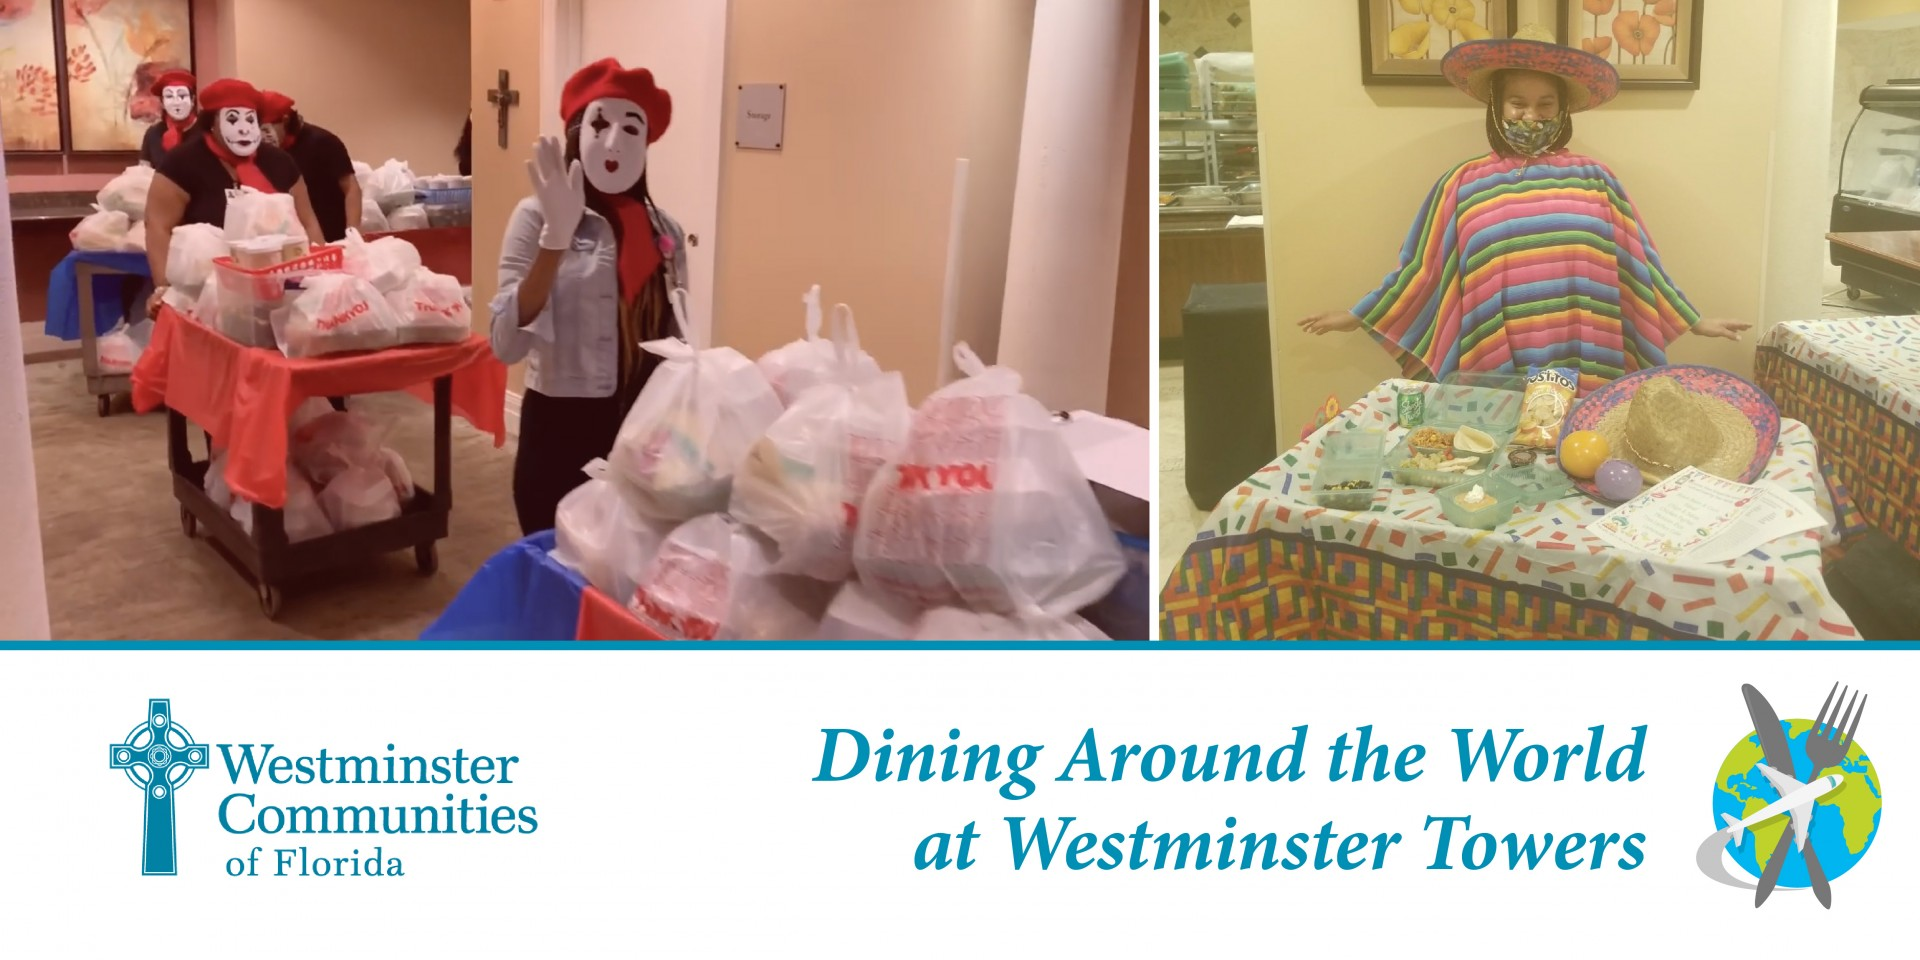 Dining Around The World at Westminster Towers